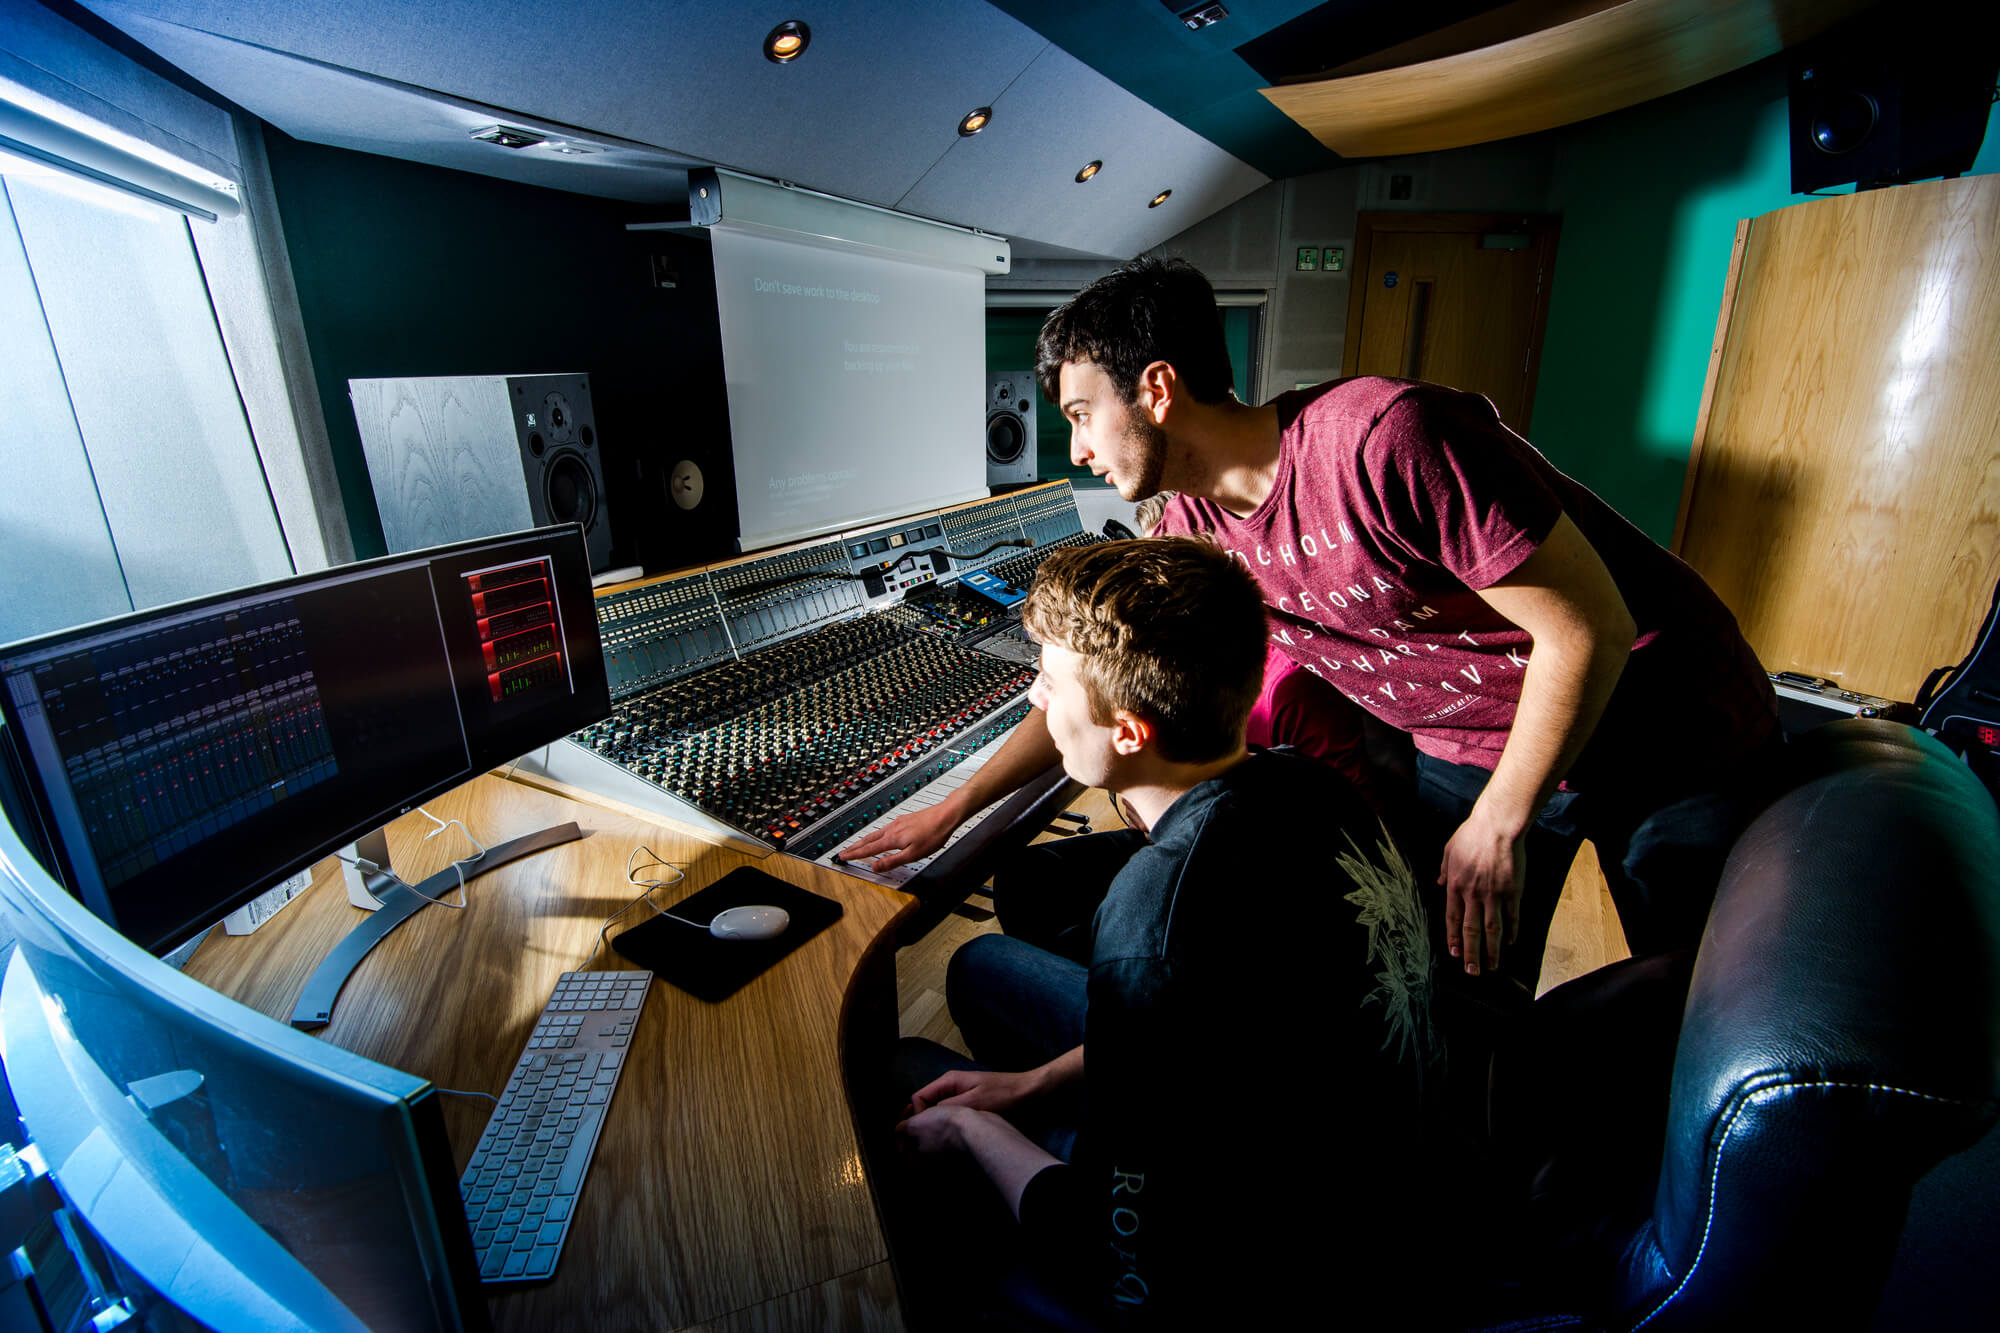 Two students working on sound equipment in the music studio